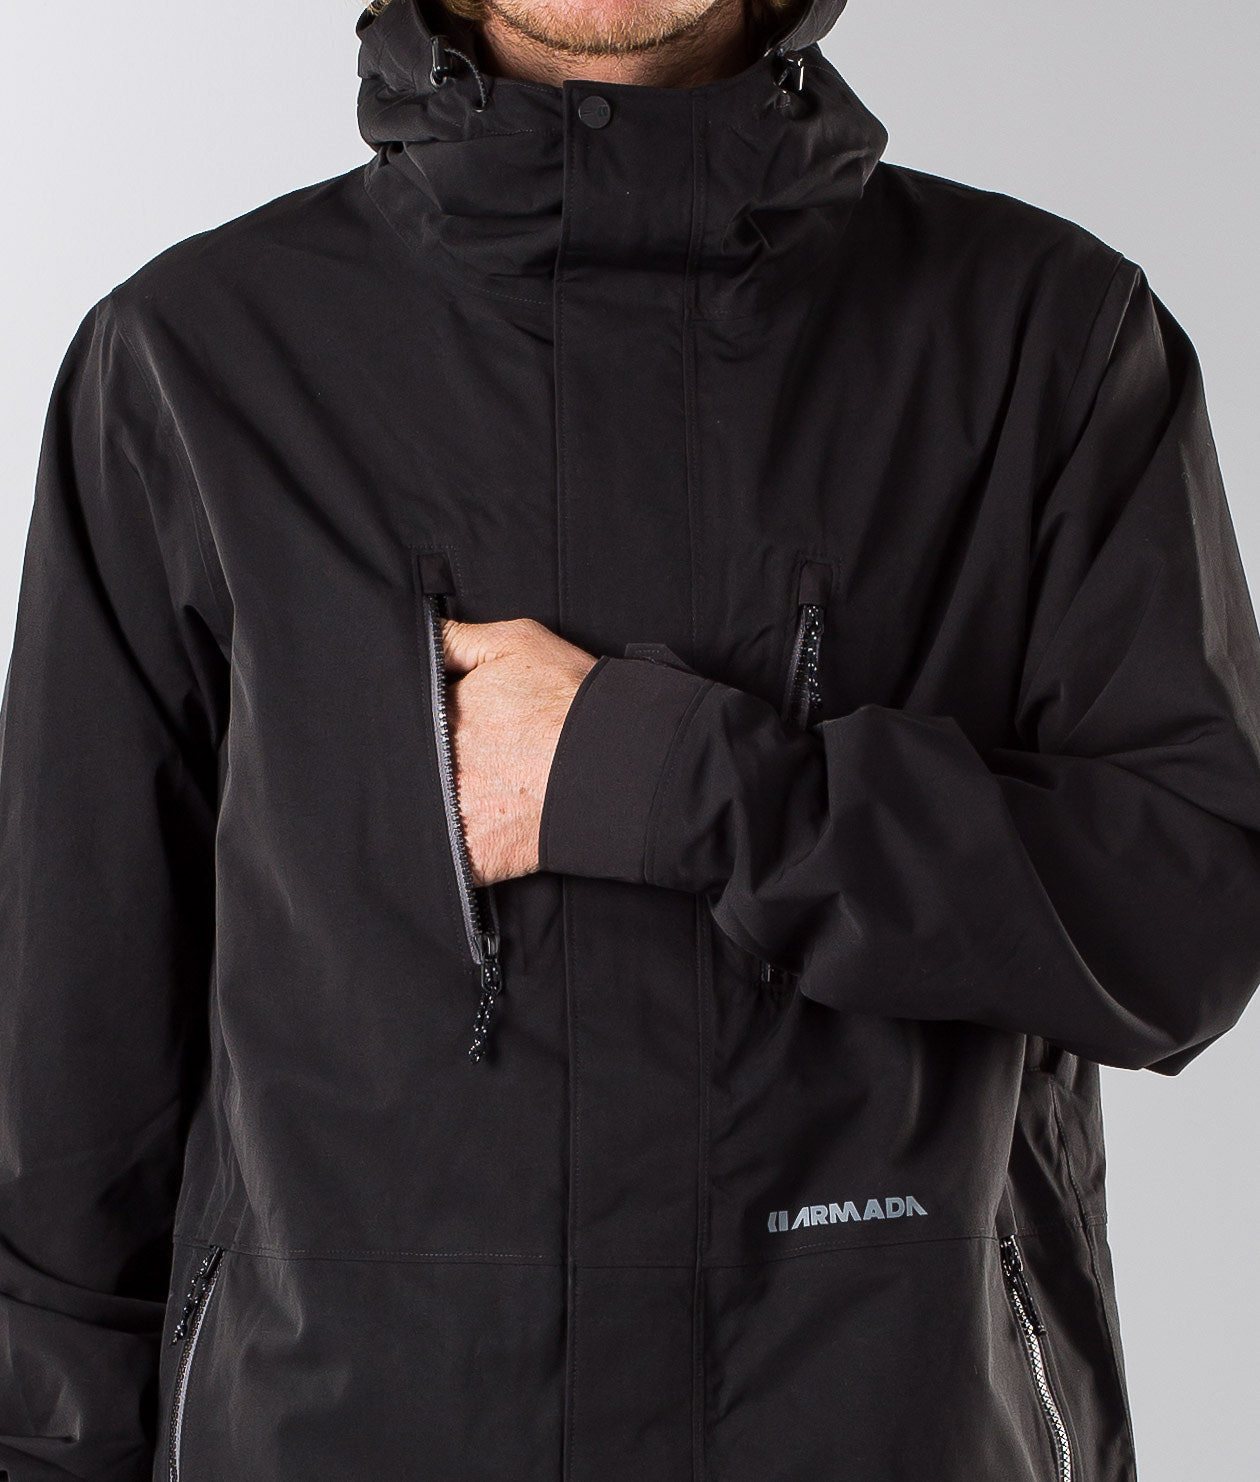 Armada Aspect Ski Jacket Black - Ridestore.com 5d81be339